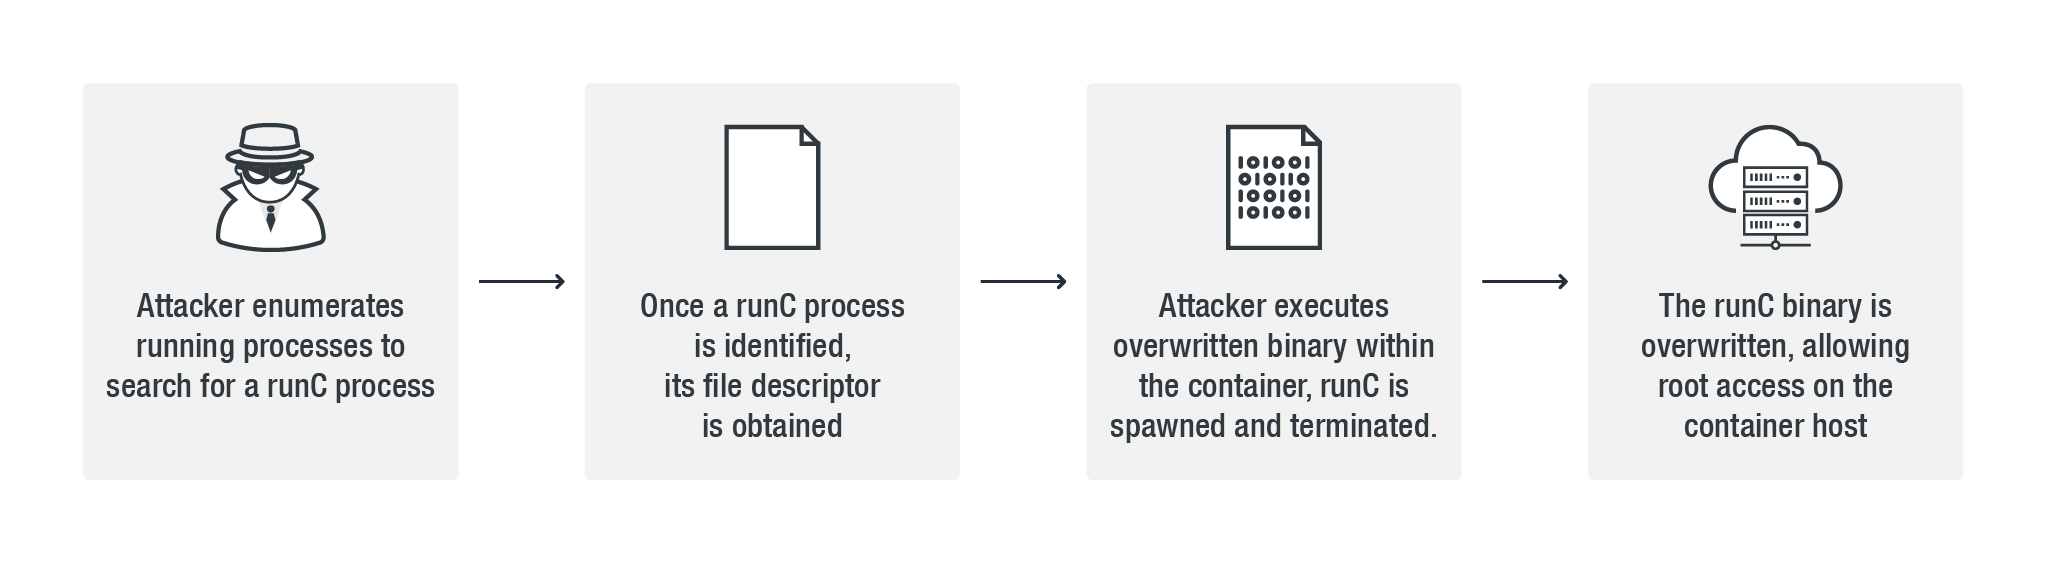 CVE-2019-5736: RunC Container Escape Vulnerability Provides Root